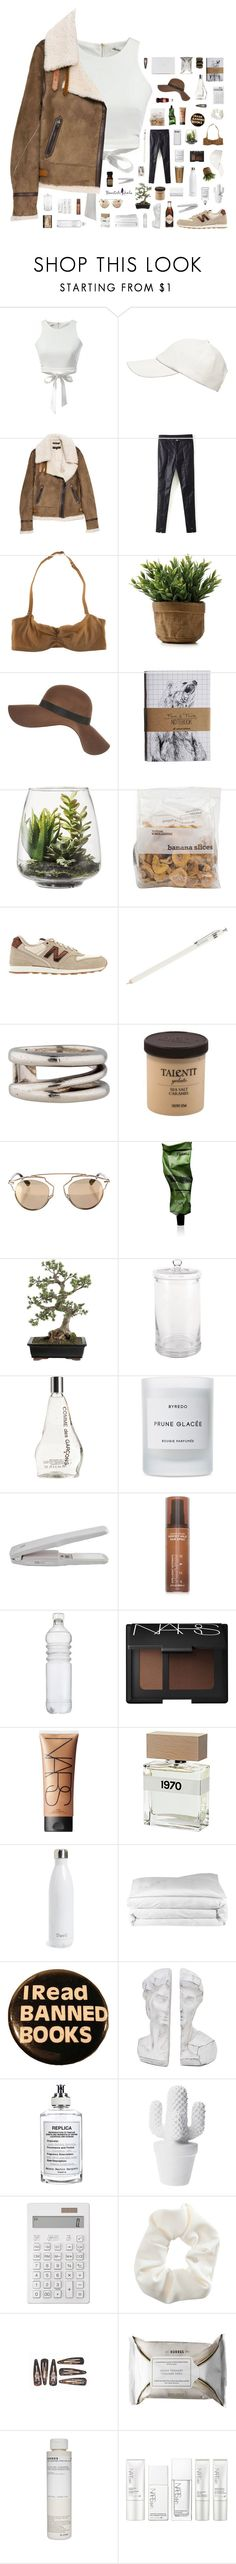 """""""Trap Queen"""" by blood-drops ❤ liked on Polyvore featuring Witchery, rag & bone, Cosabella, River Island, Threshold, New Balance, J.Crew, Tiffany & Co., Christian Dior and Aesop"""